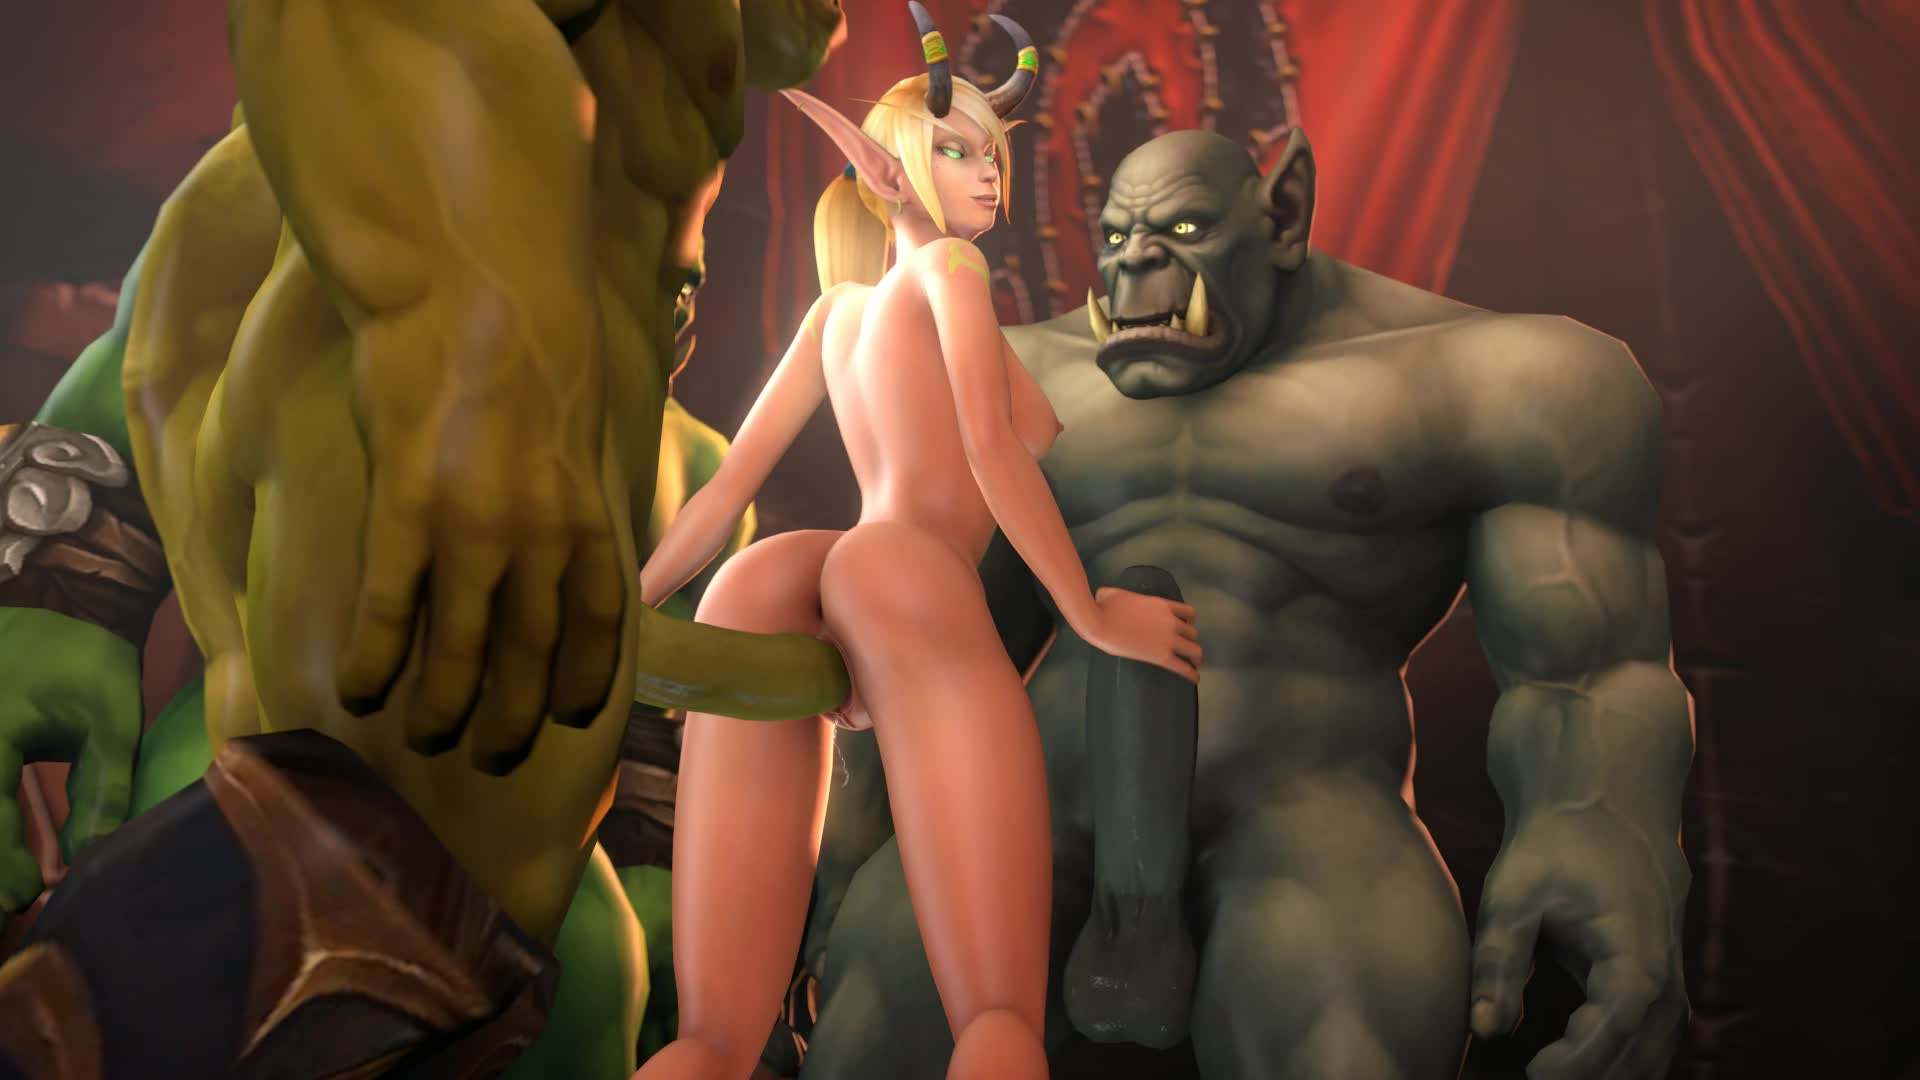 World of warcraft hardcore blood elf hentai smut clip